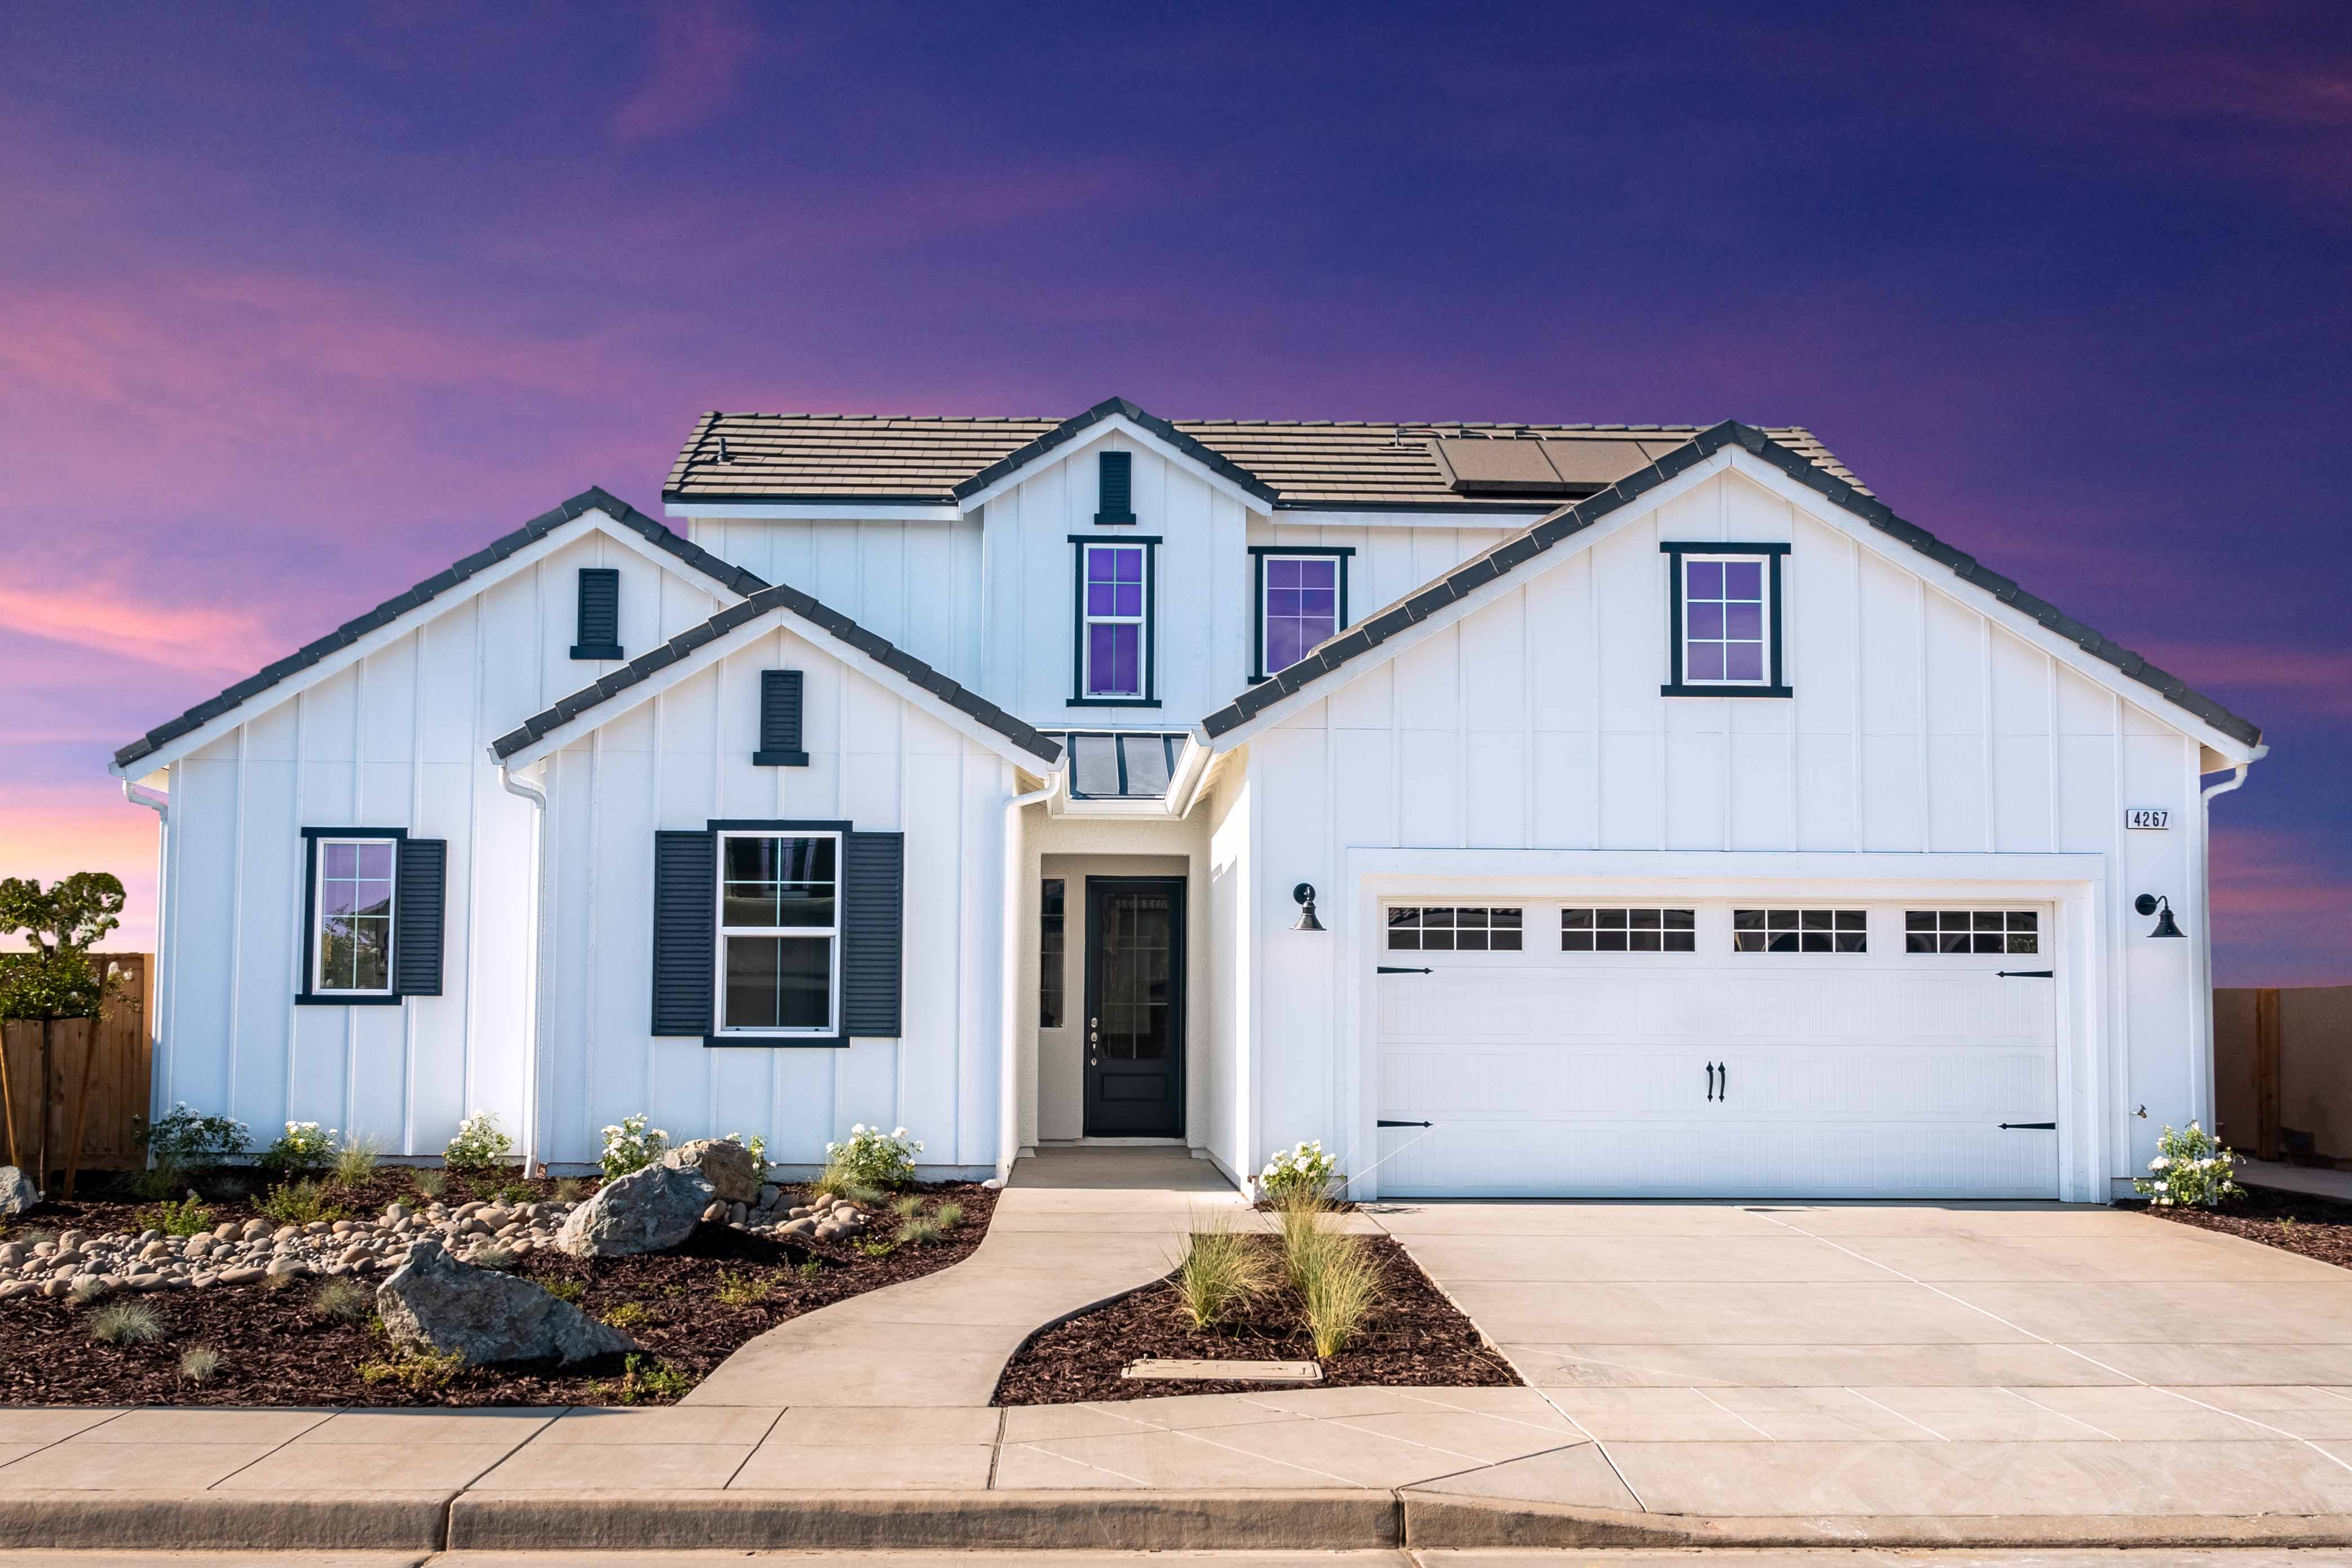 Join Us For A 45 Year Celebration & New Model Home Grand Opening!